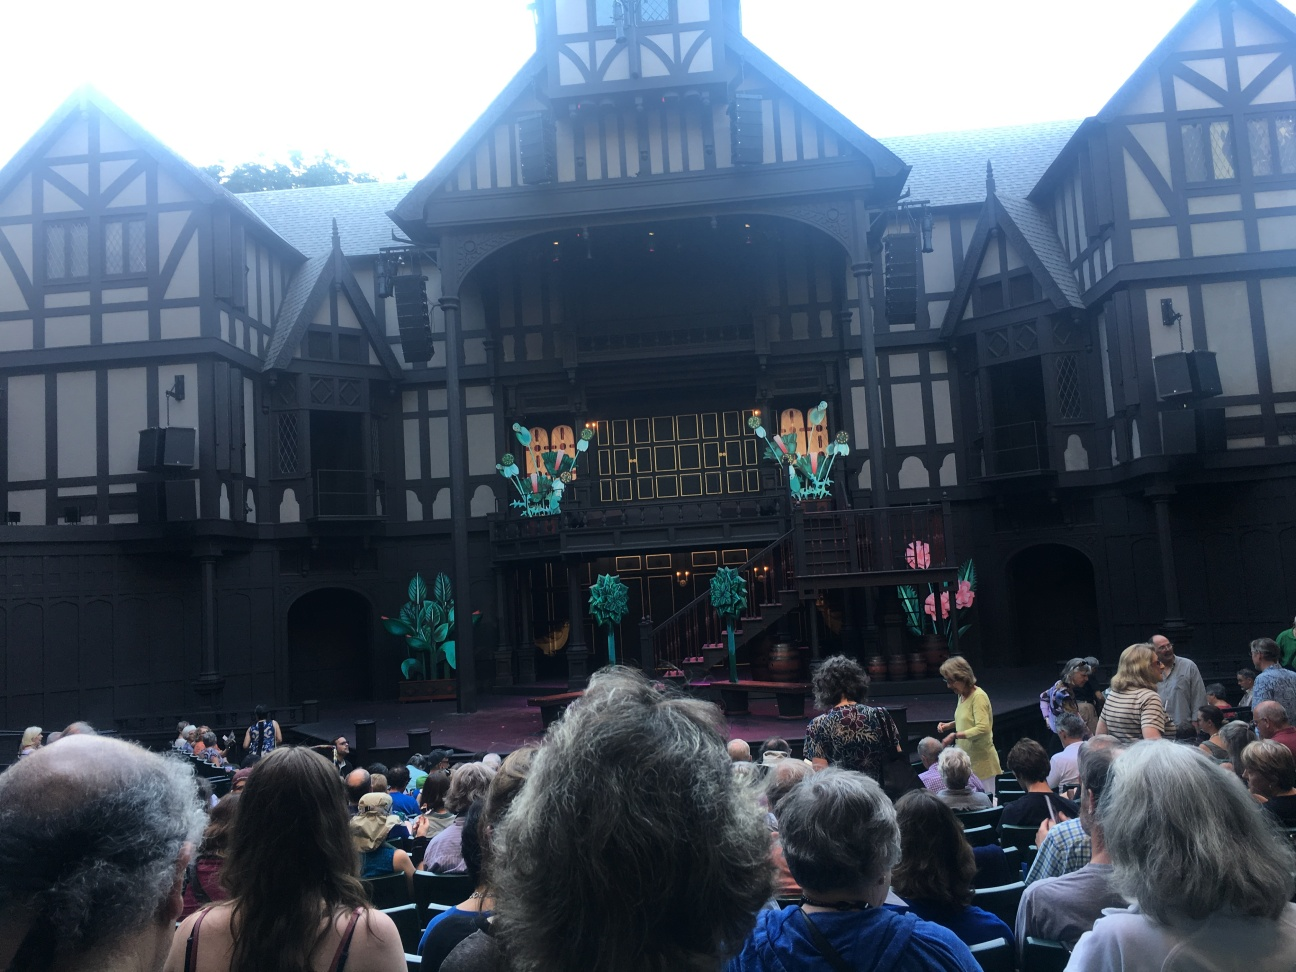 The Outdoor Theater